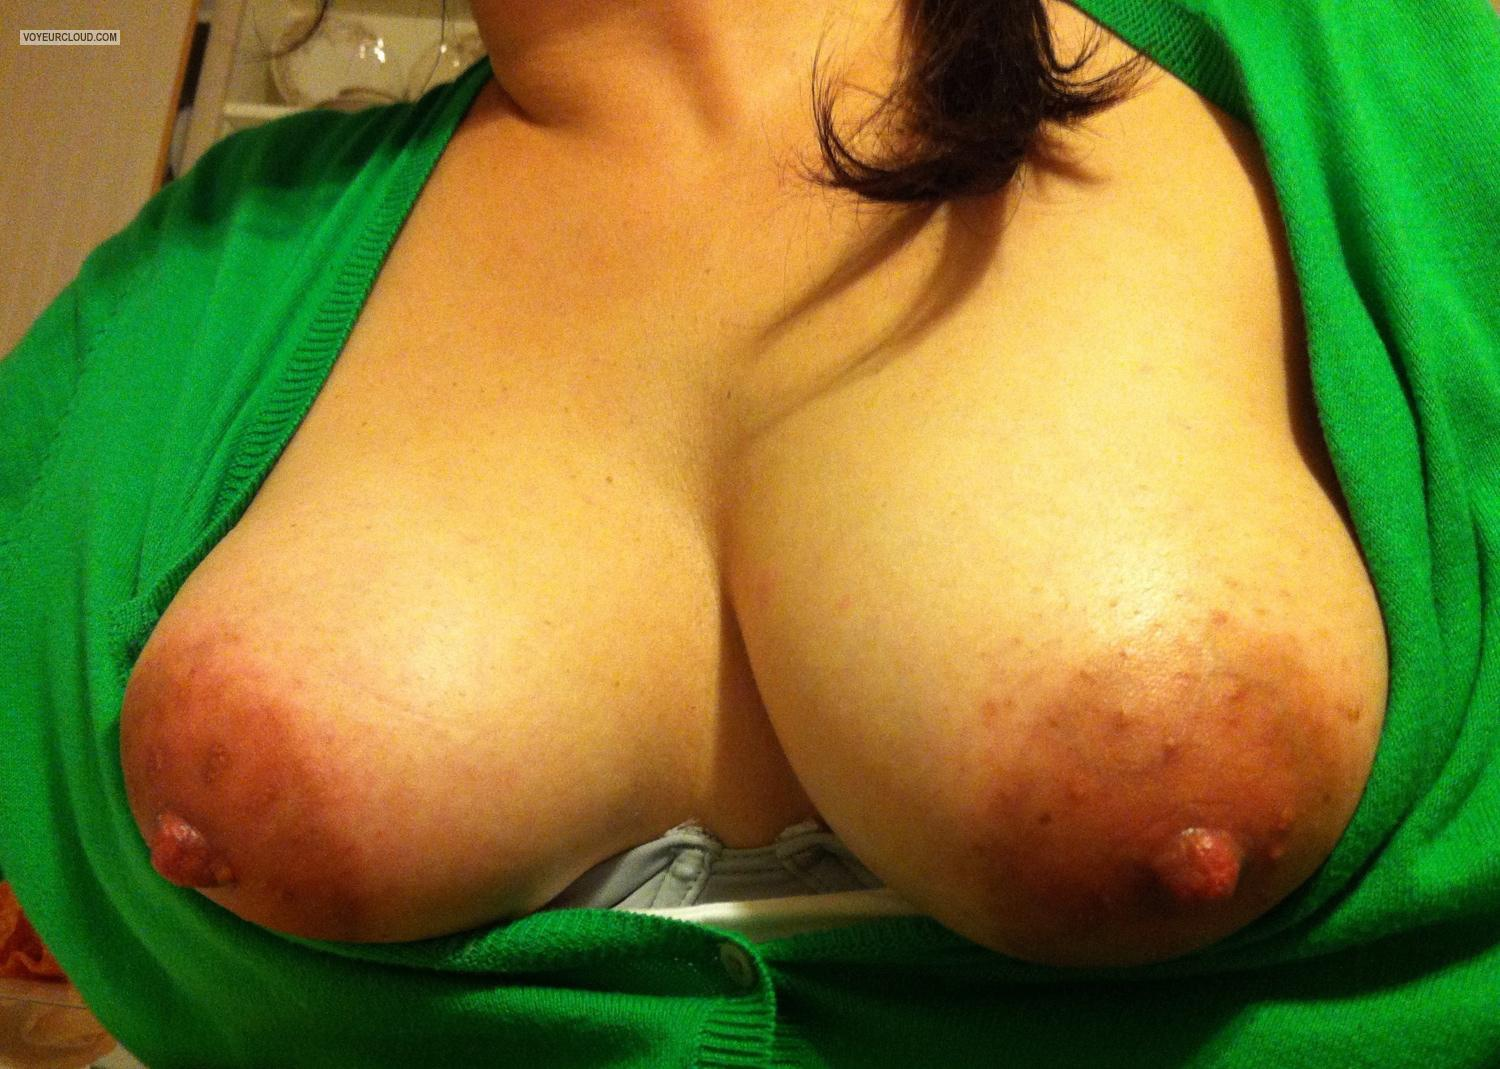 My Big Tits Selfie by Anne5